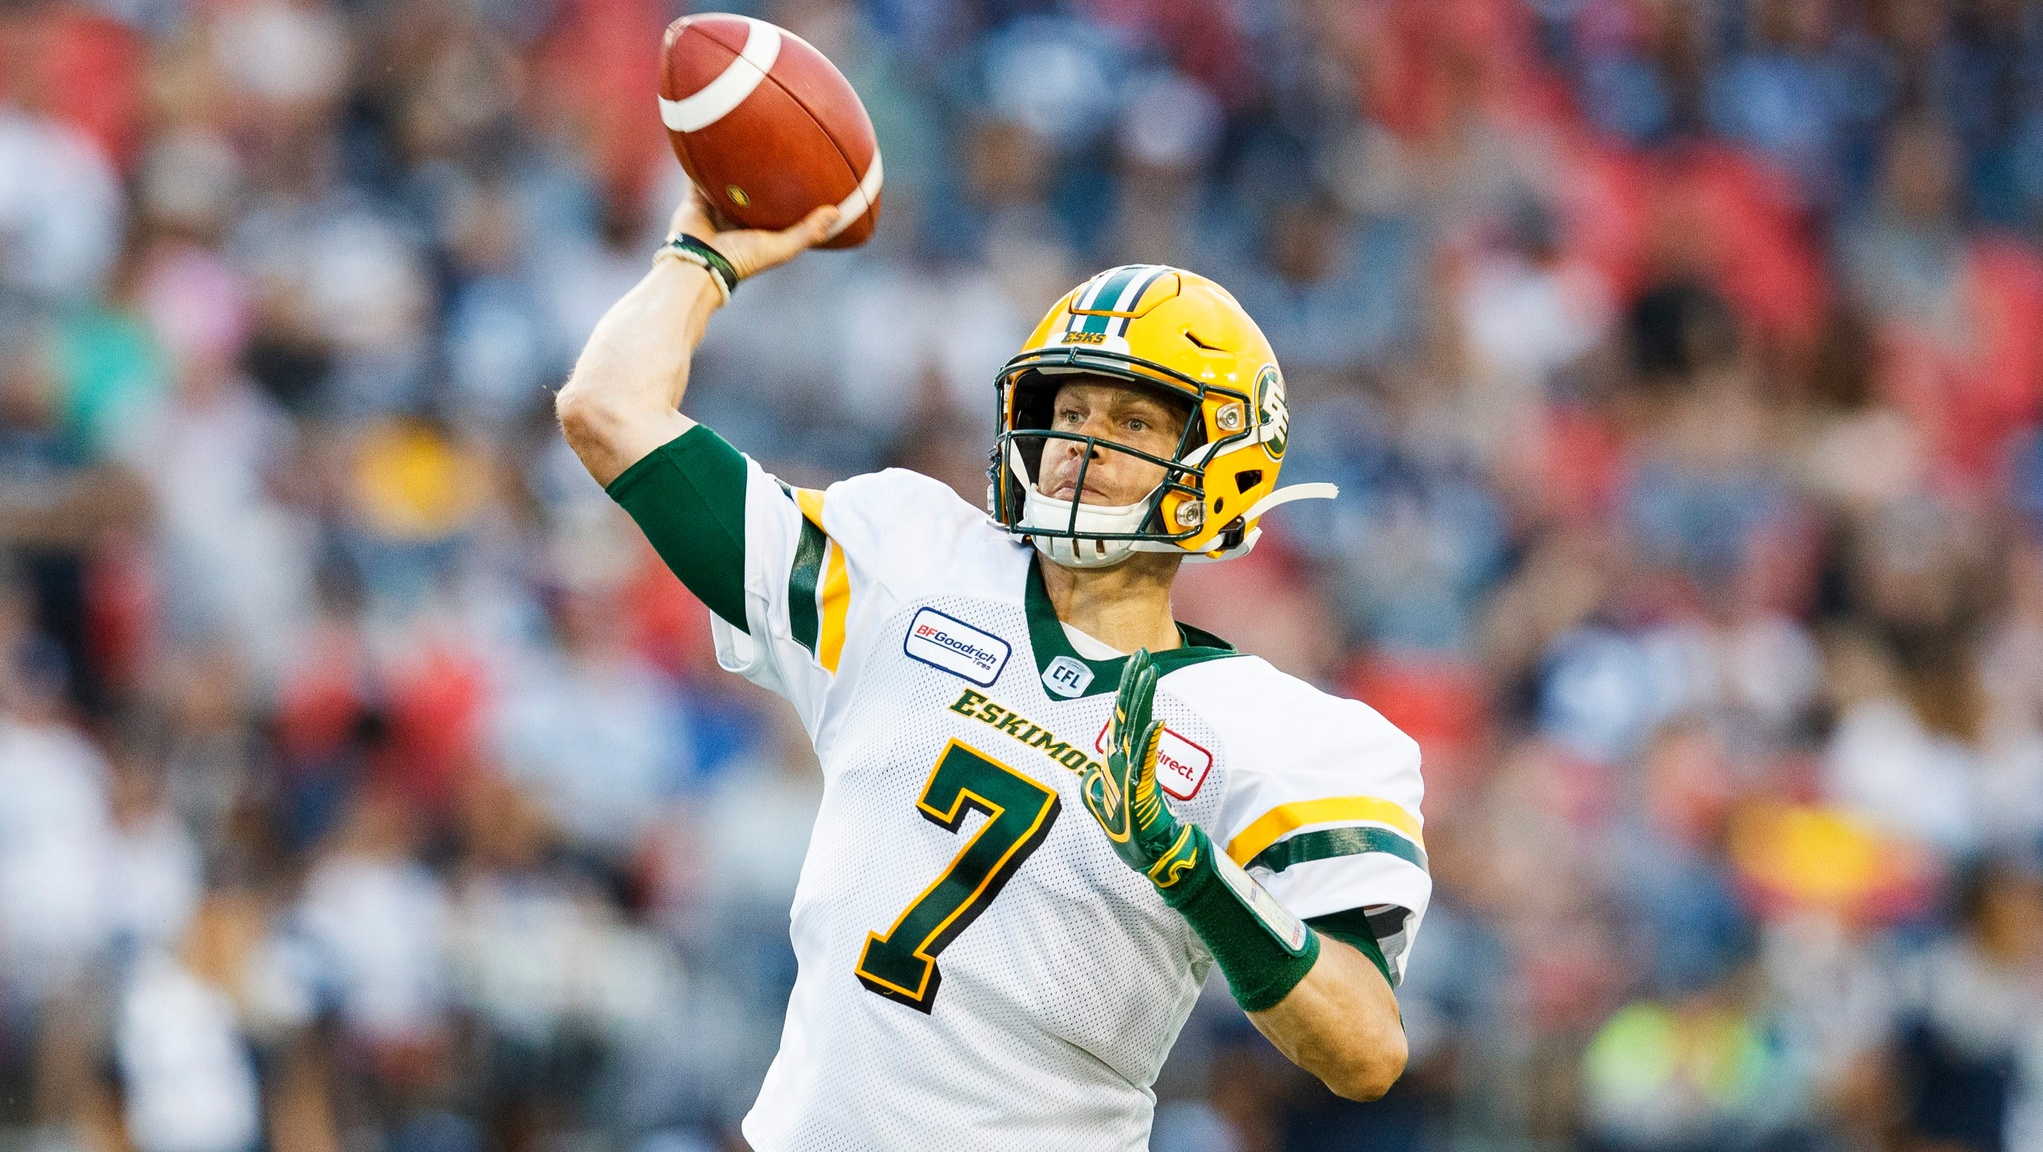 Harris continues strong season in win over Argos - CFL.ca